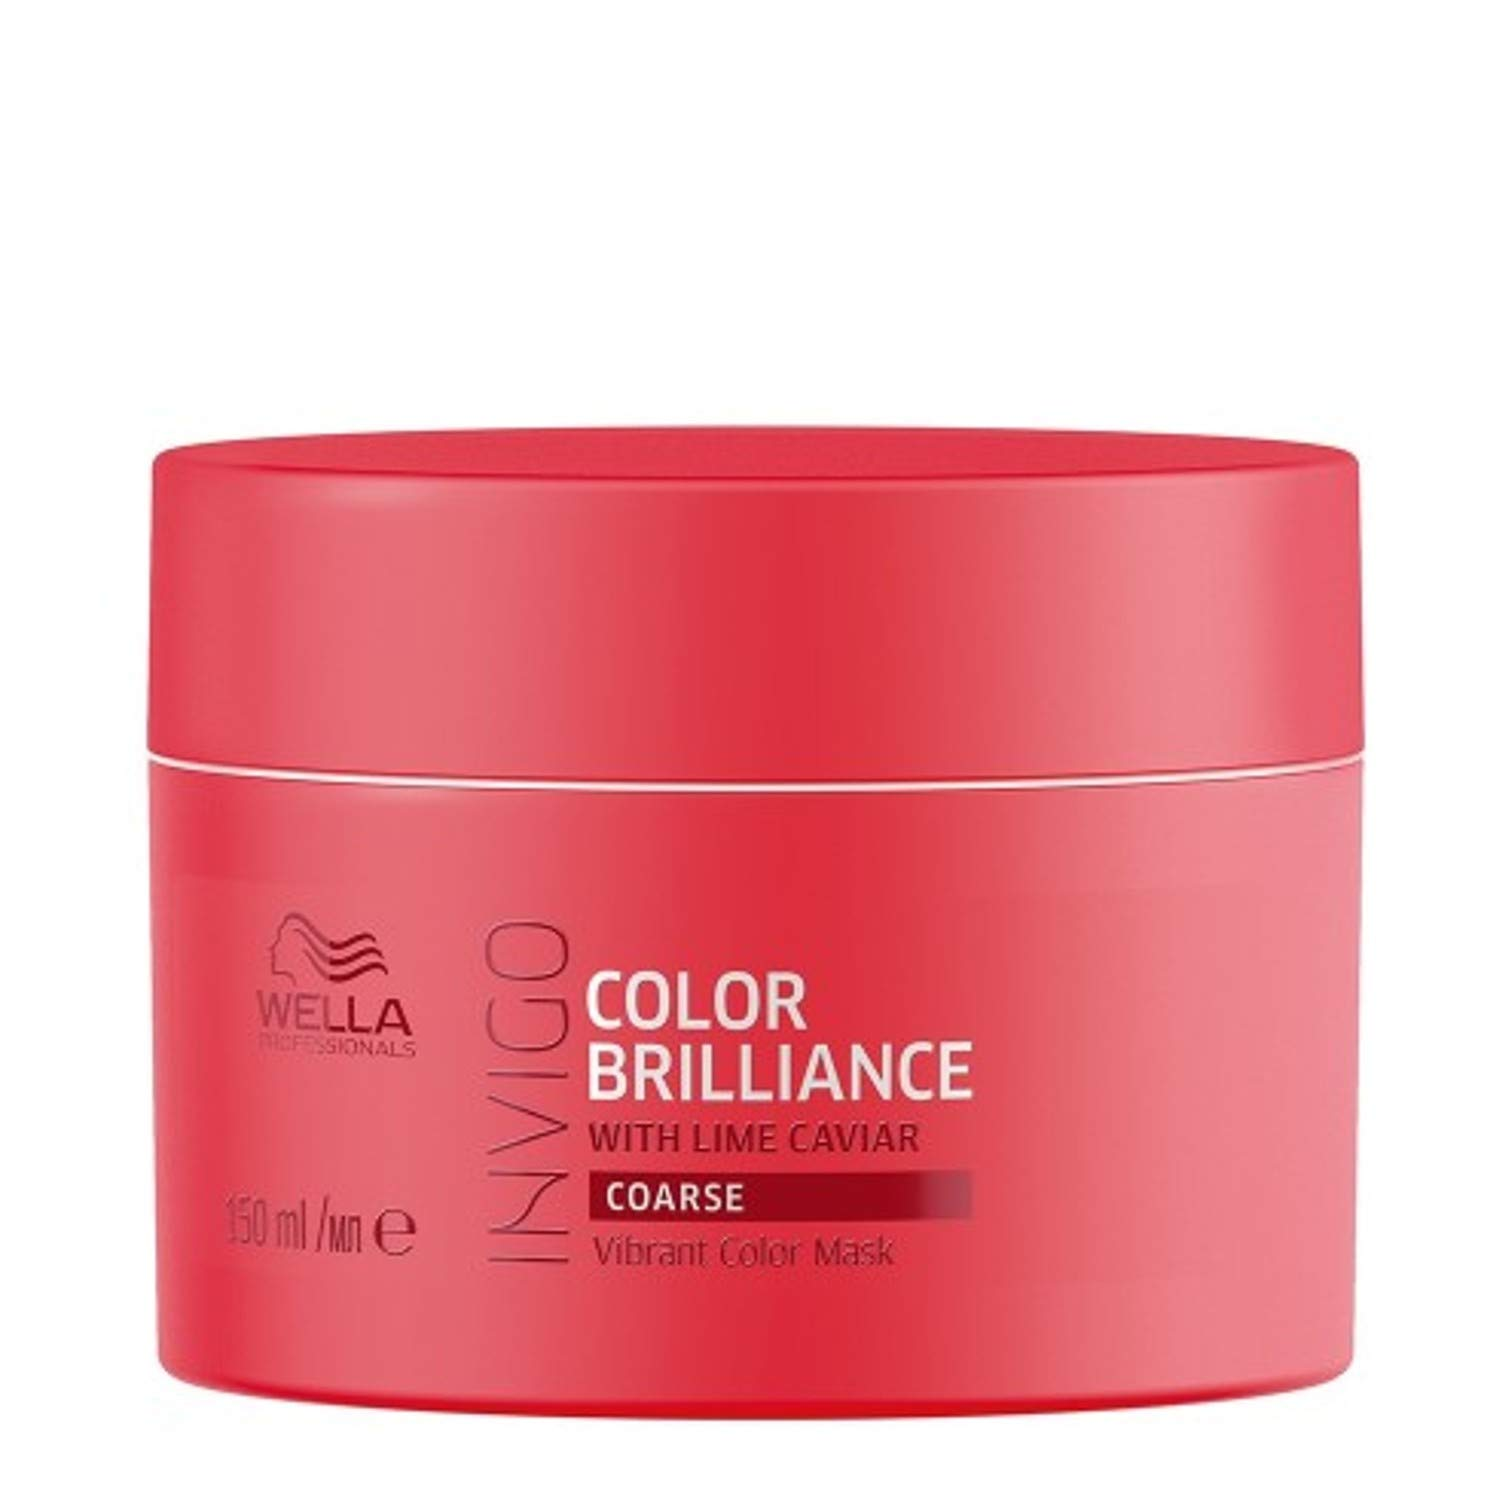 Wella INVIGO Color Brilliance Mask Coarse mascarilla para el pelo Unisex 150 ml - Mascarillas para el cabello (Unisex, 150 ml, 1 pieza(s))